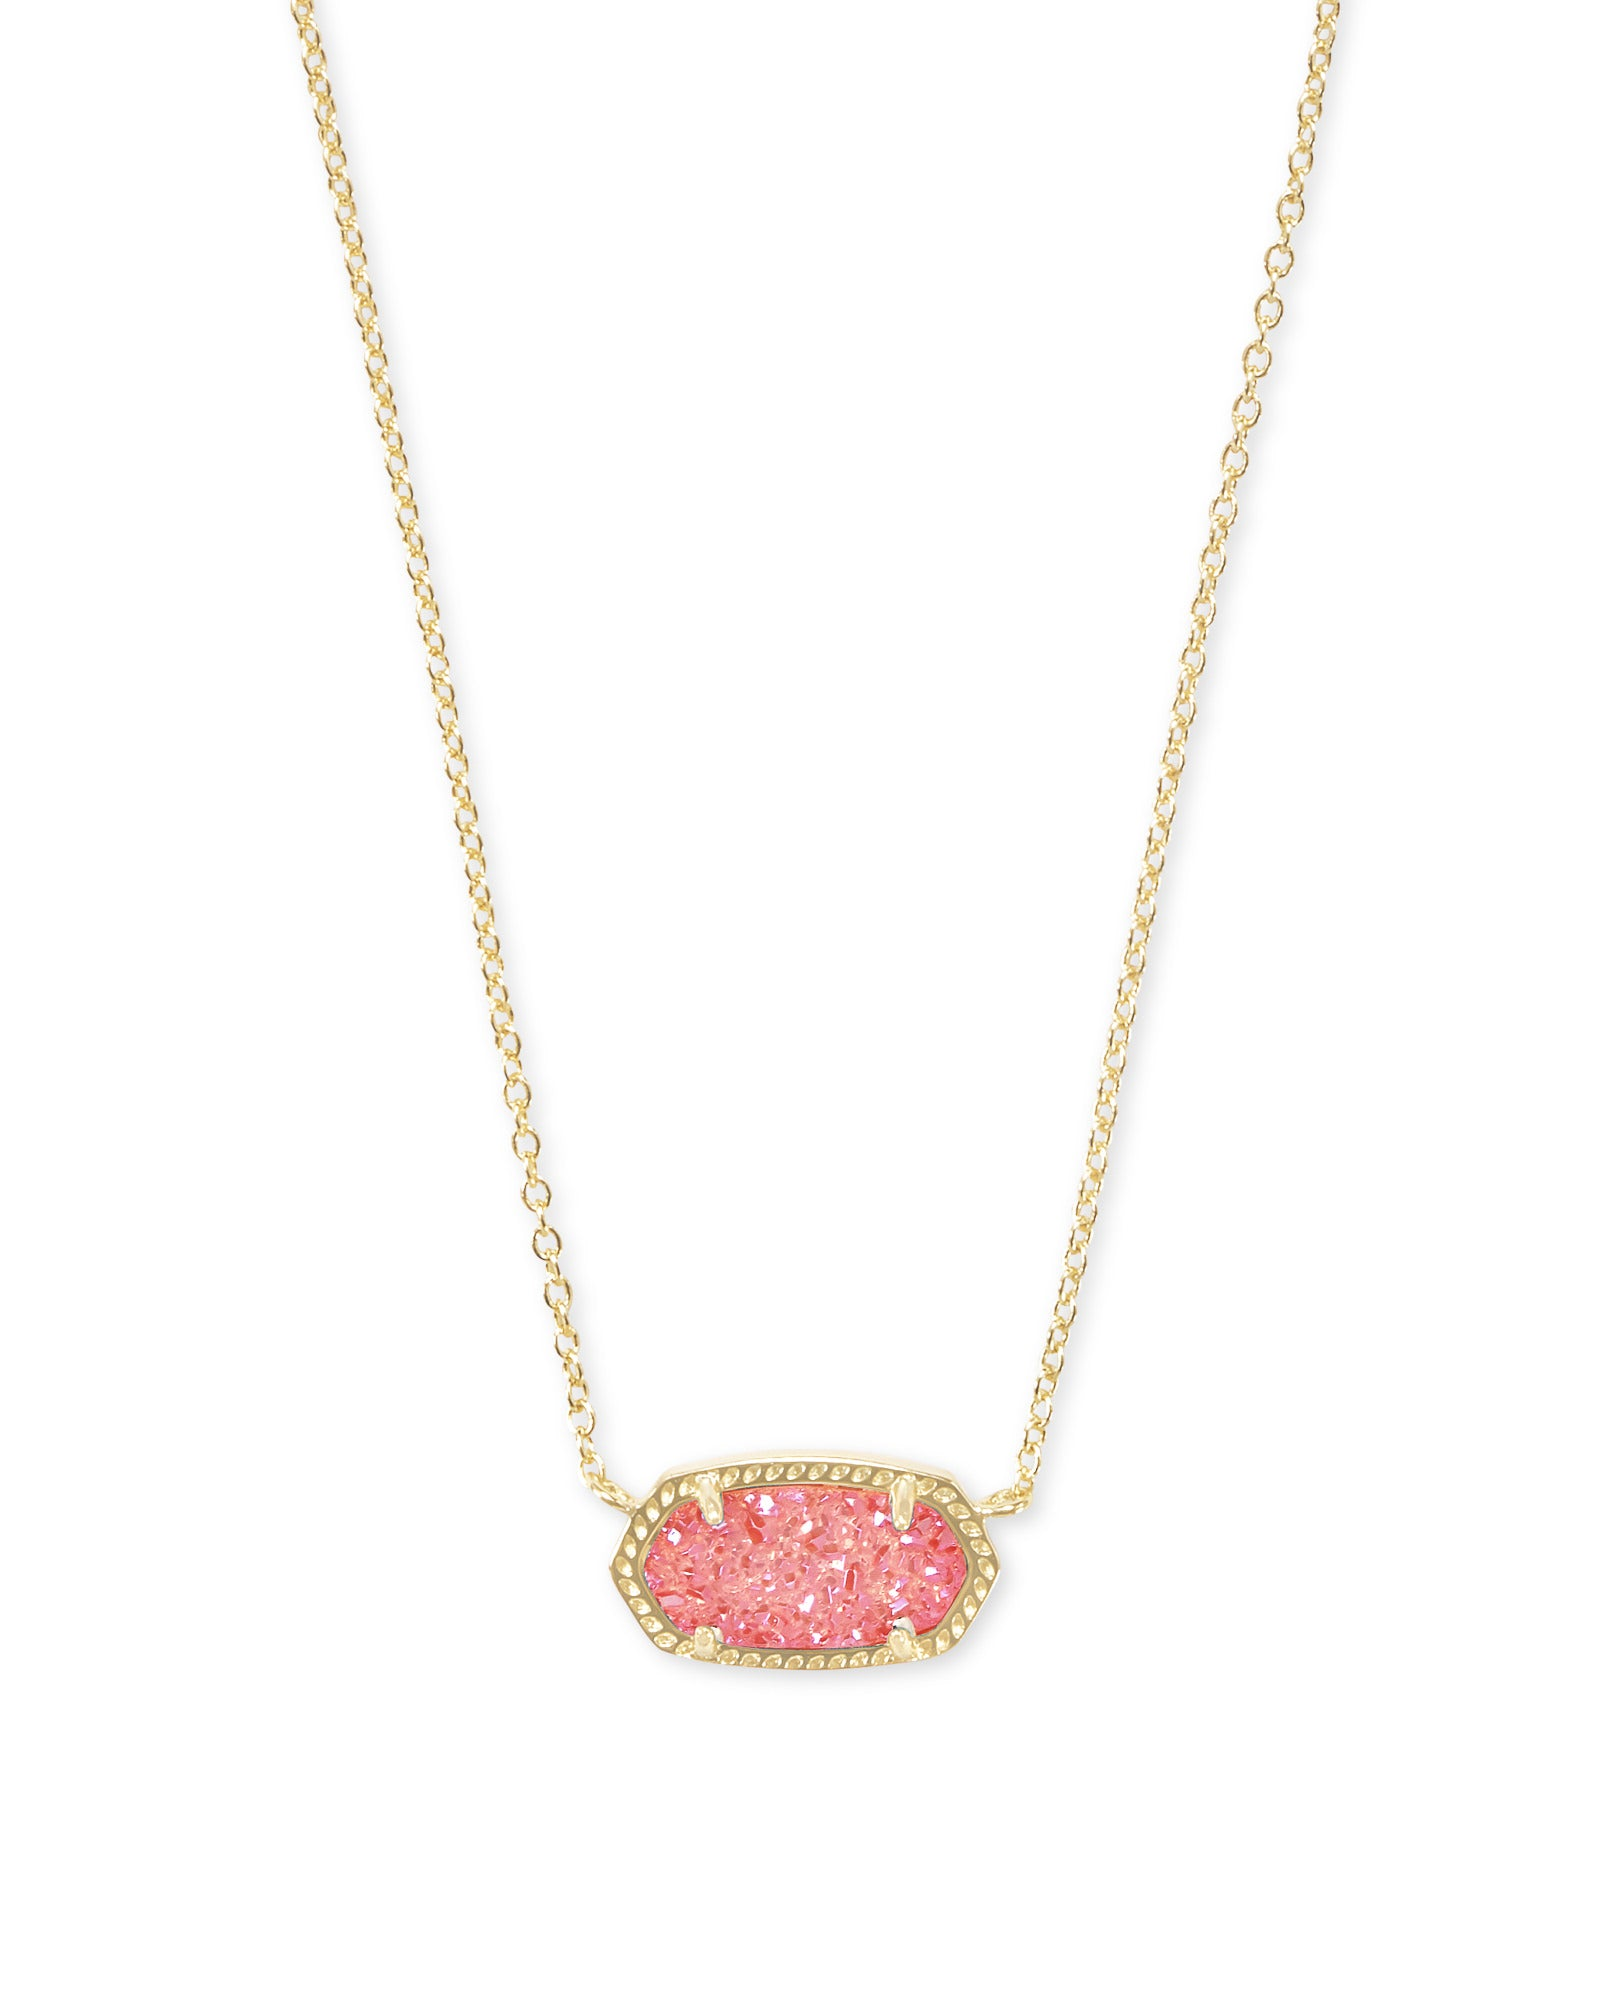 Kendra Scott Elisa Gold Pendant Necklace In Coral Drusy